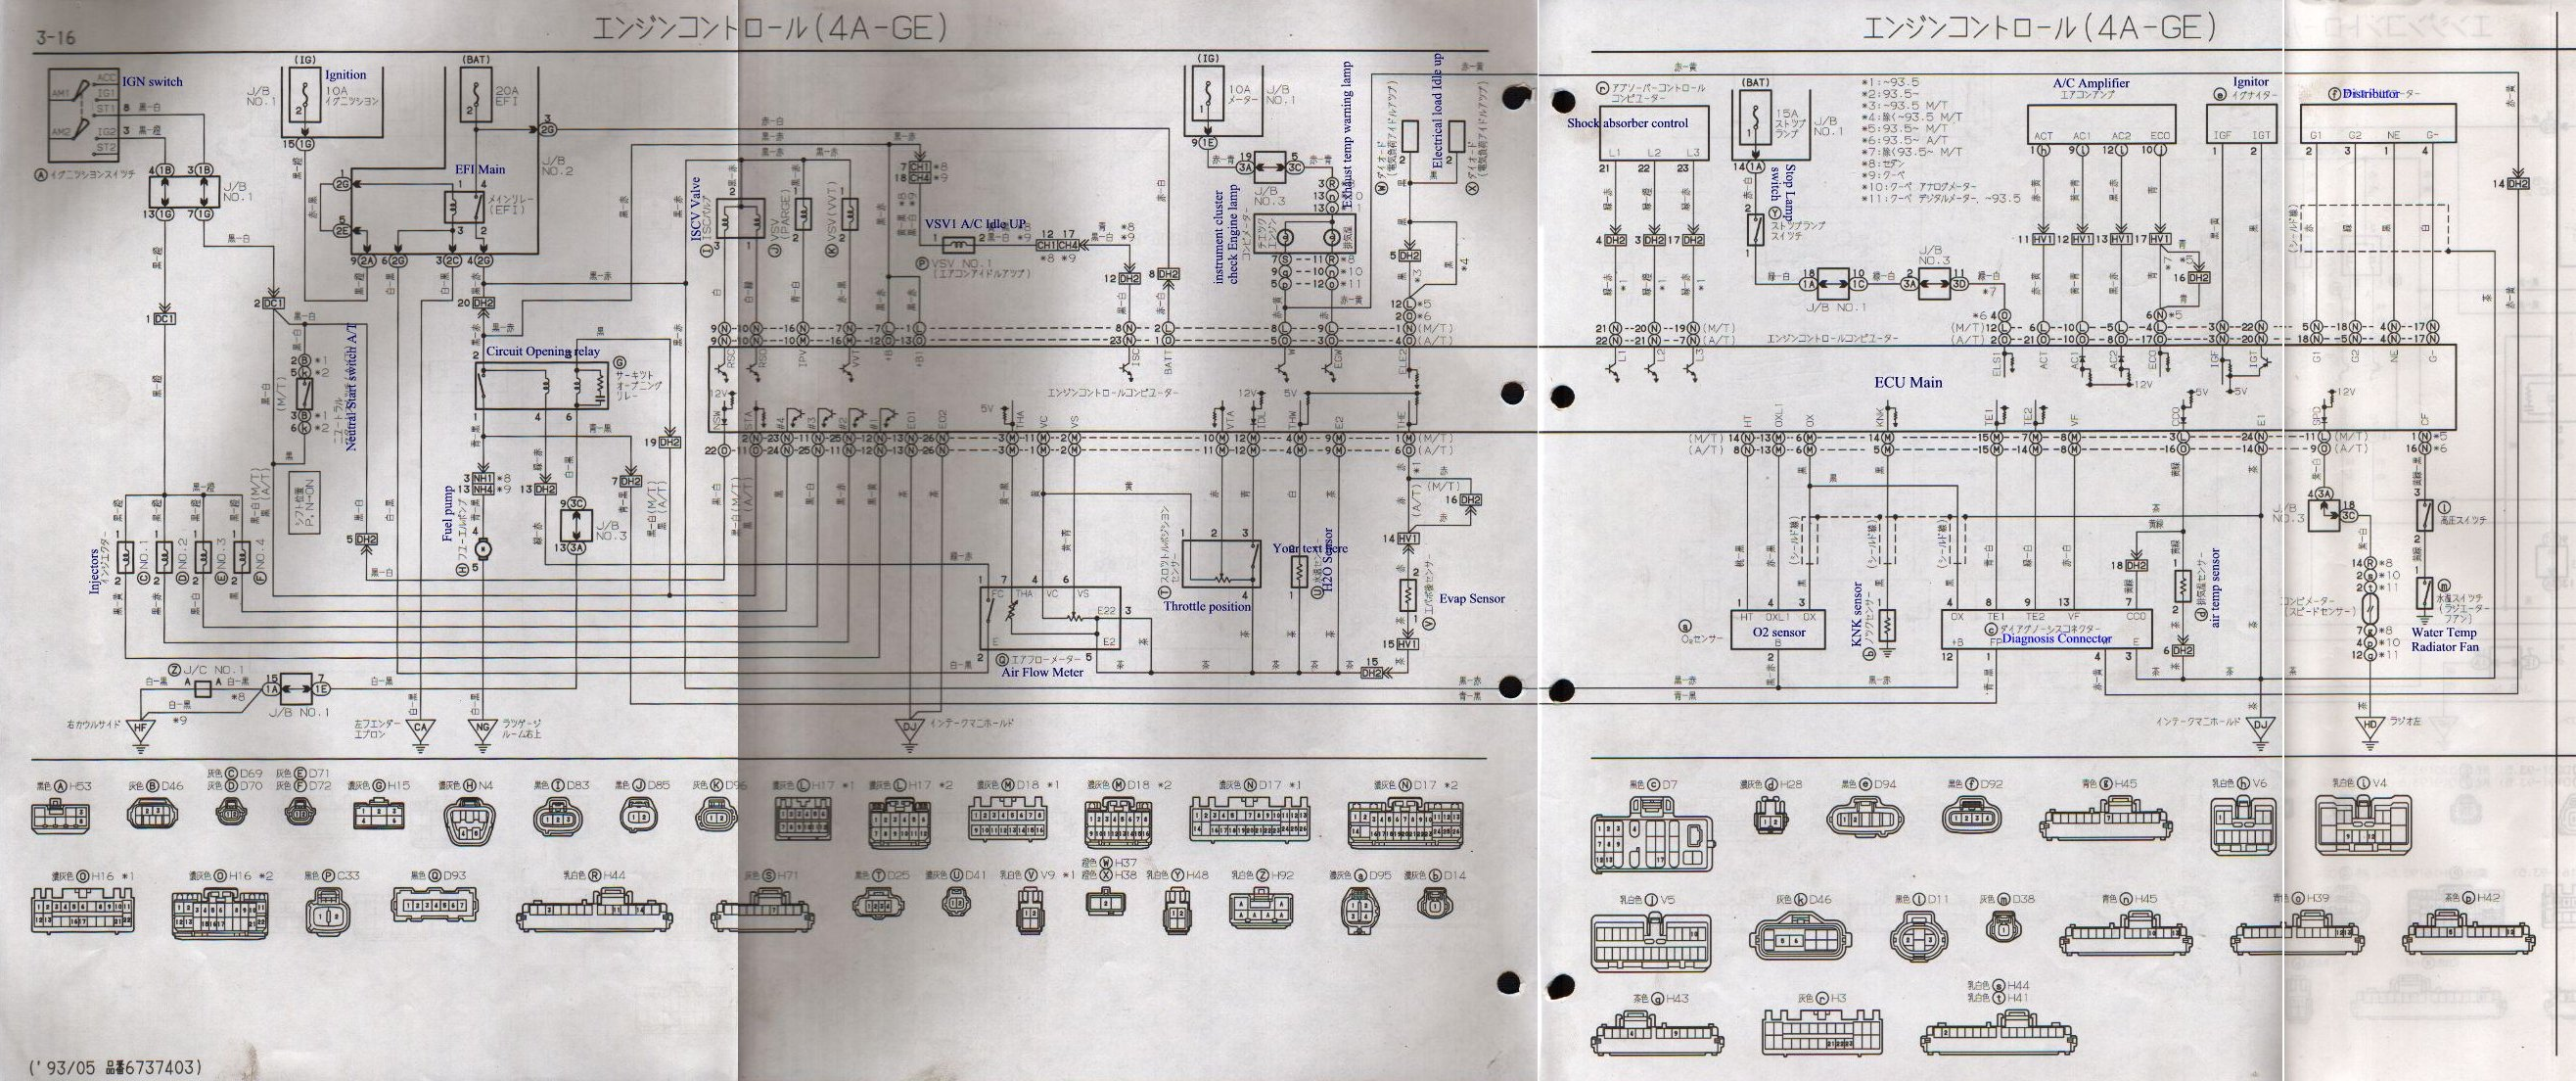 1990 toyota celica headlight wiring diagram 43 wiring diagram 1993 toyota pickup wiring diagram silvertop_diagram 100 [ wiring diagram toyota echo 2004 ] replace alternator belt 1994 toyota pickup wiring